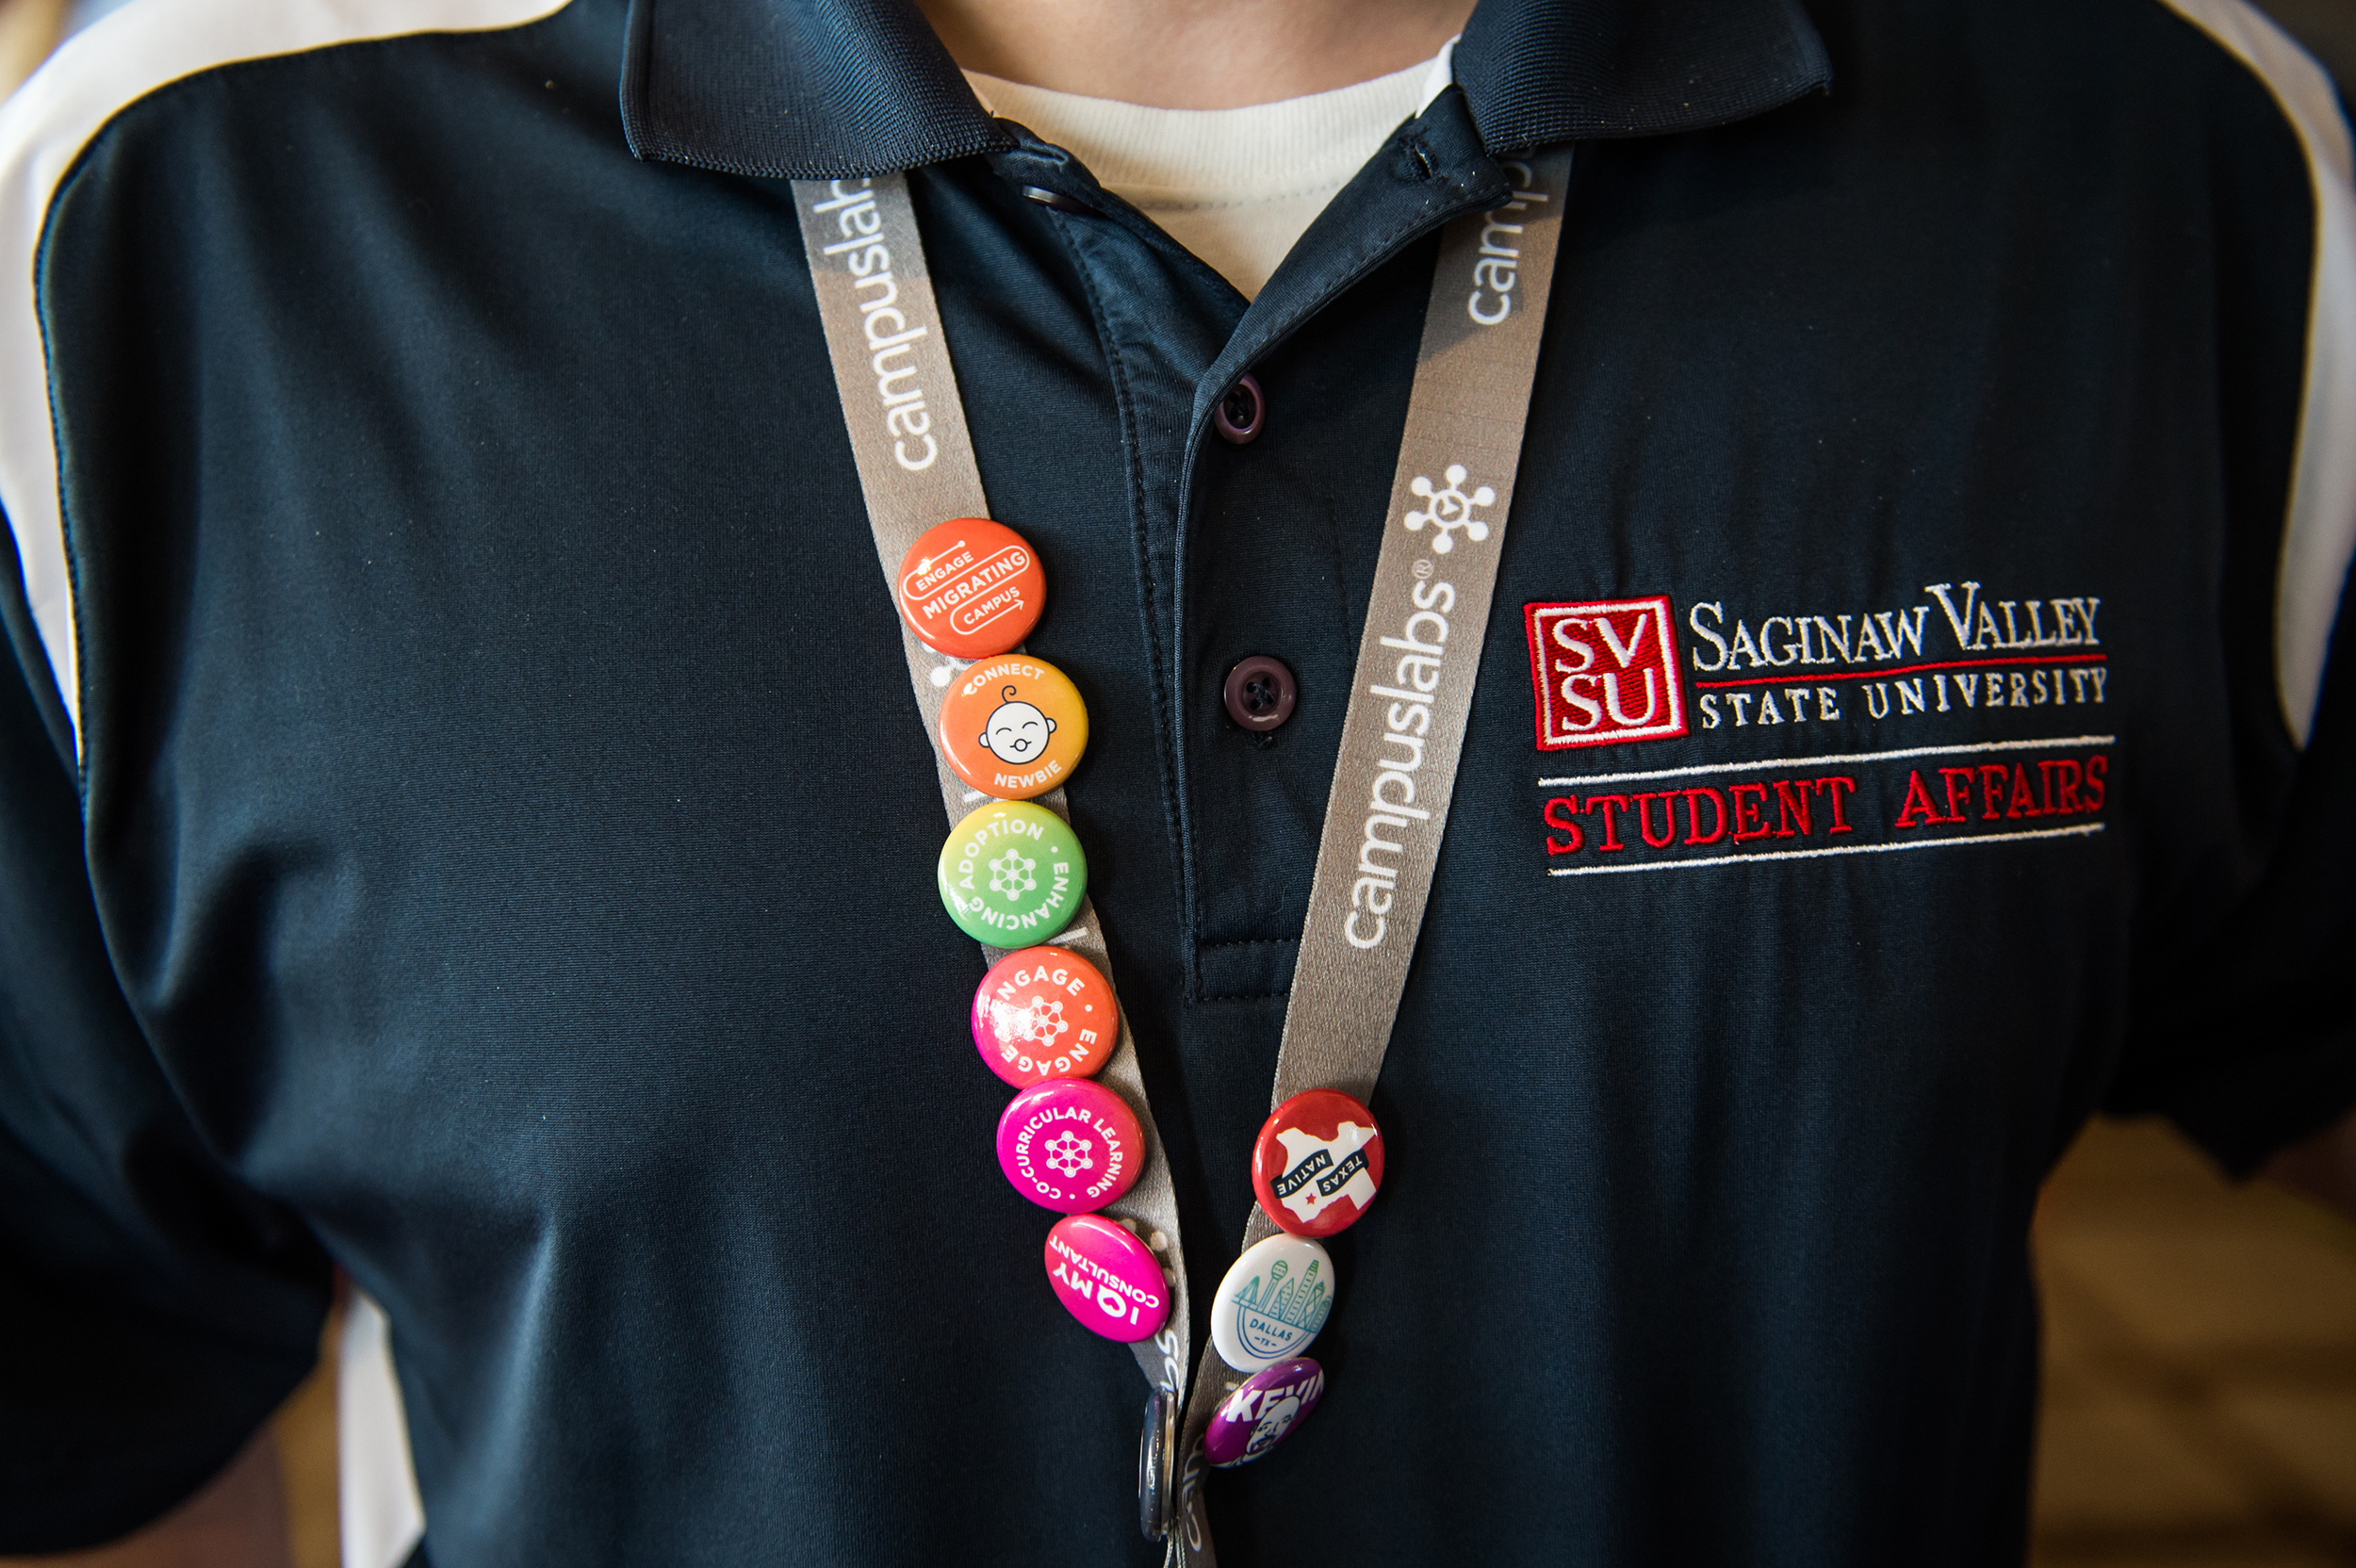 connect-lanyard-buttons.jpg